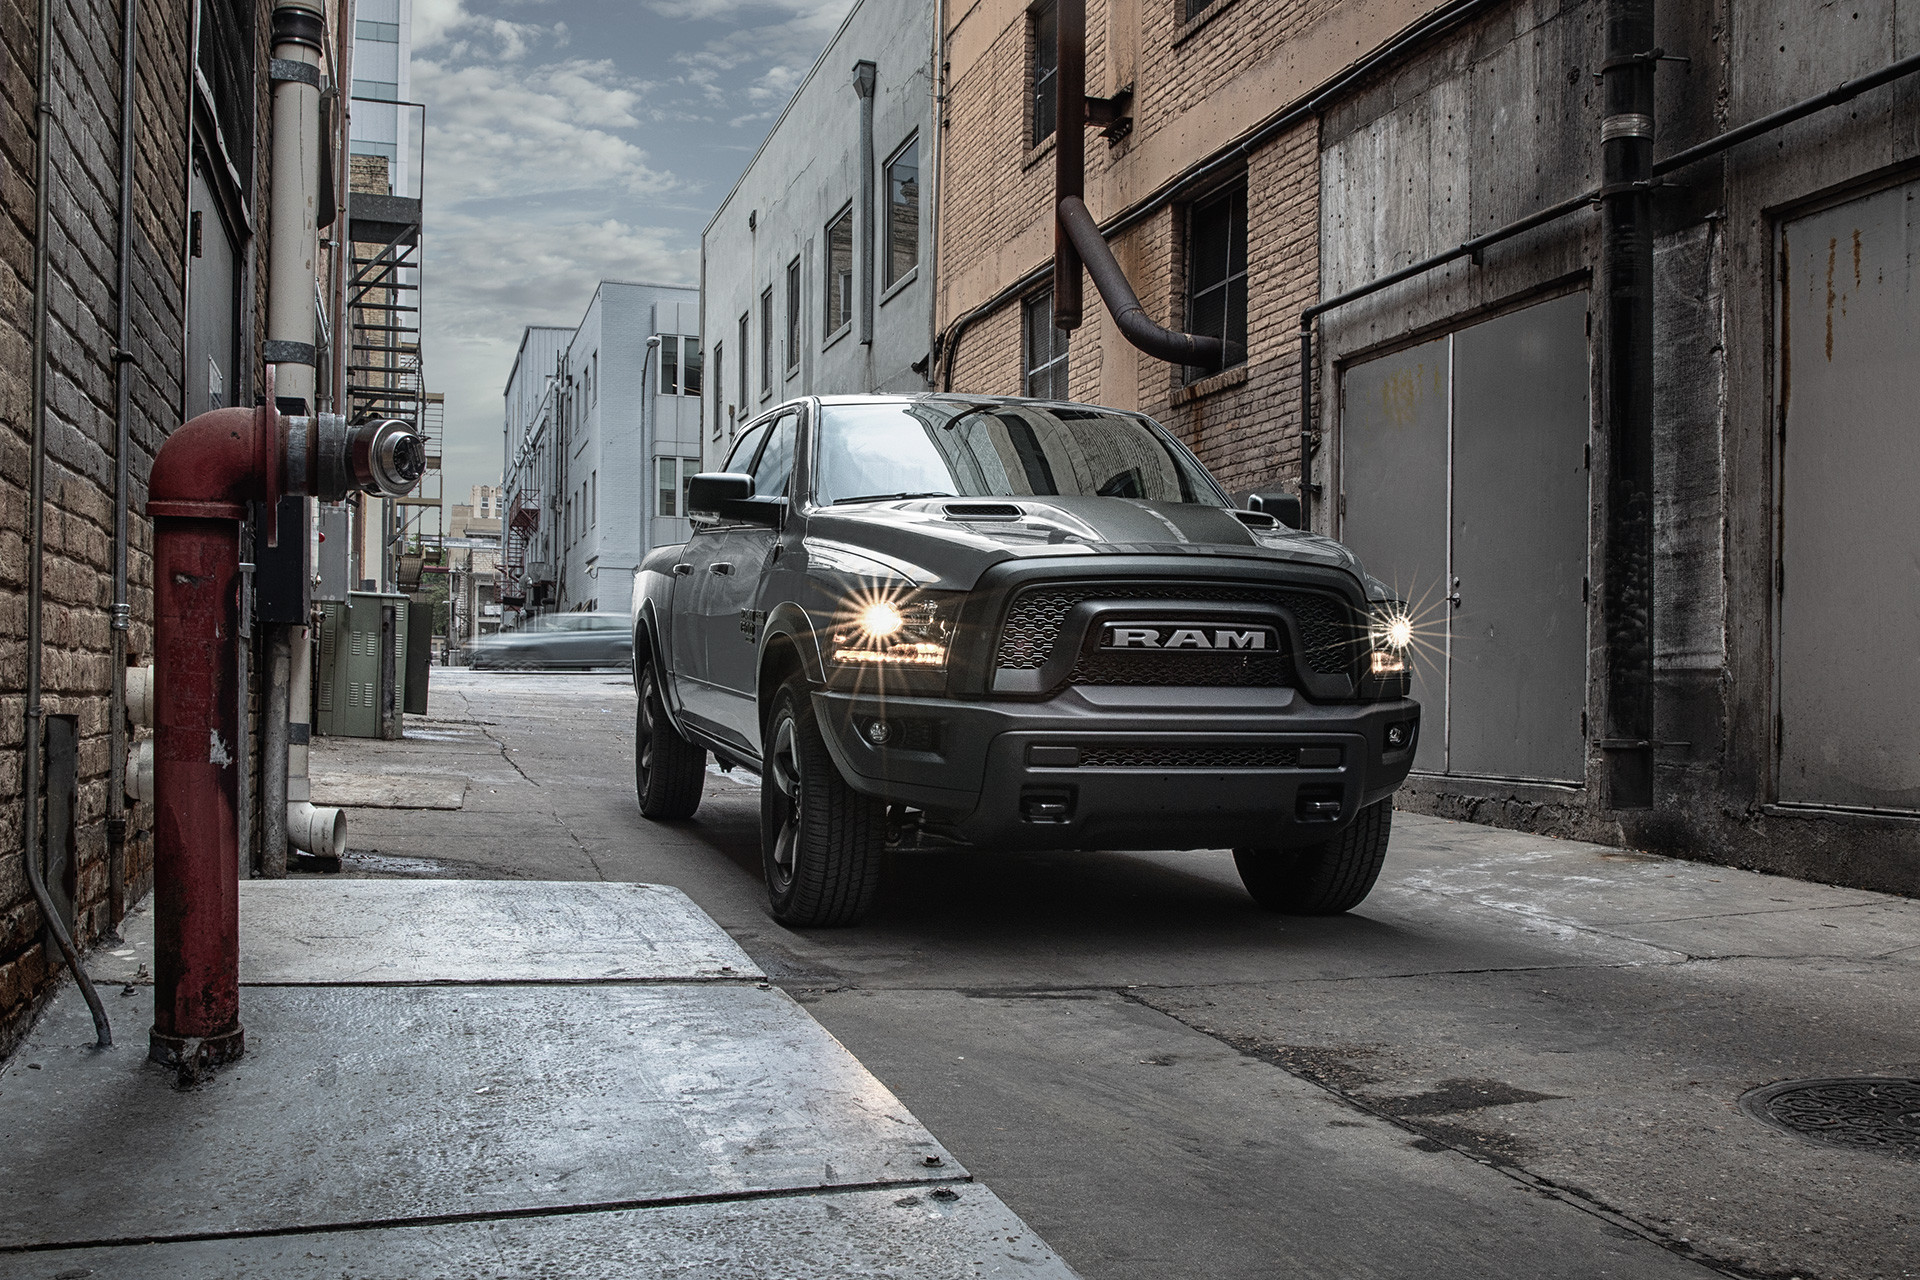 Front view of the grey 2020 Ram 1500 Classic Warlock parked in an alley